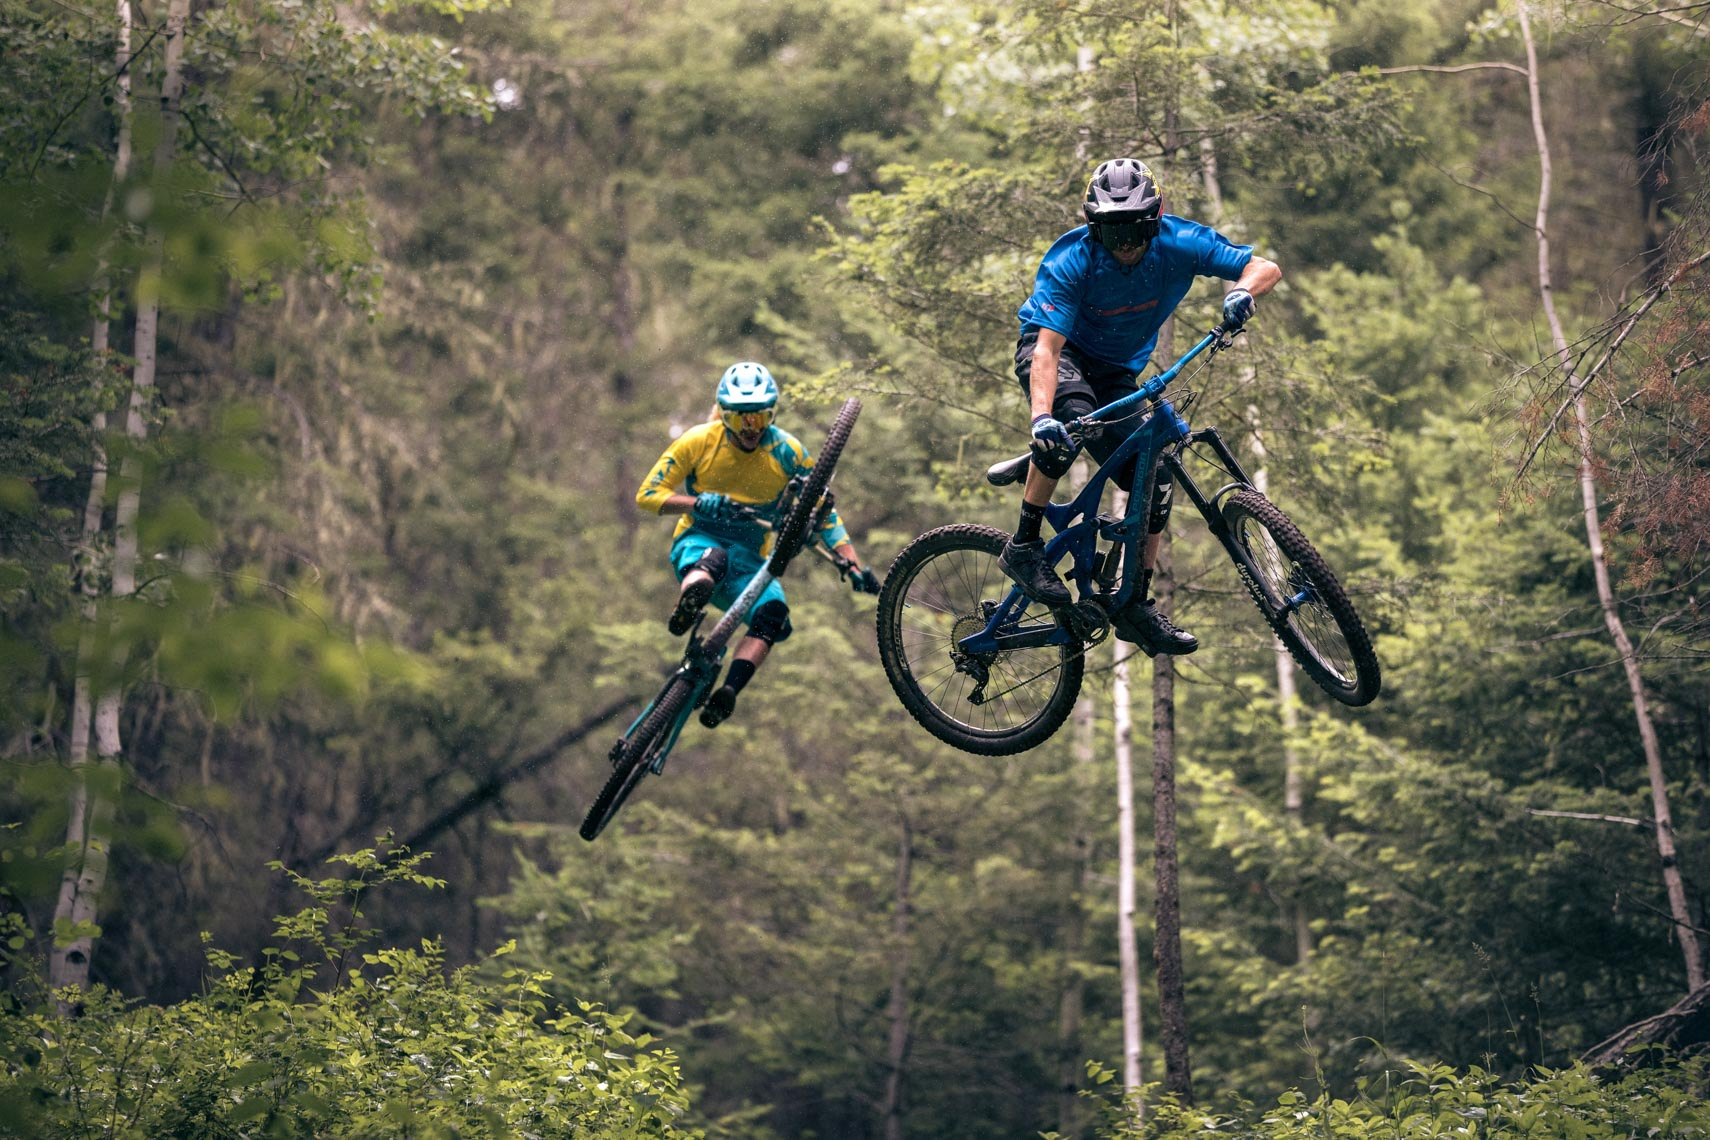 Mountain bike athletes Cody Kelley and Kurt Sorge jump on a trail near Williams Lake BC